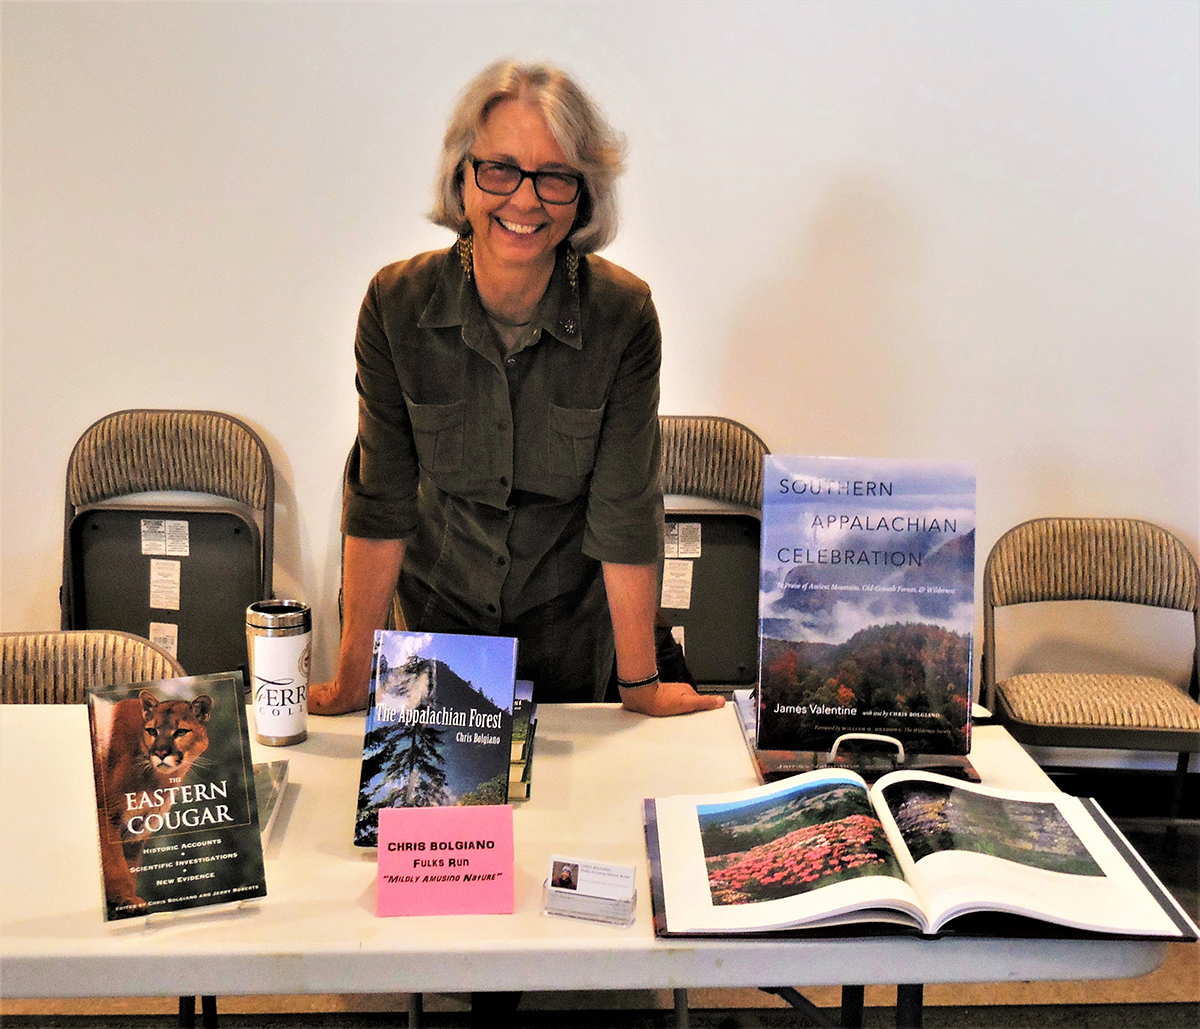 Appearing at the Plains District Memorial Museum (Timberville, VA) Meet Our Local Authors Book Signing event in Nov. 2016.